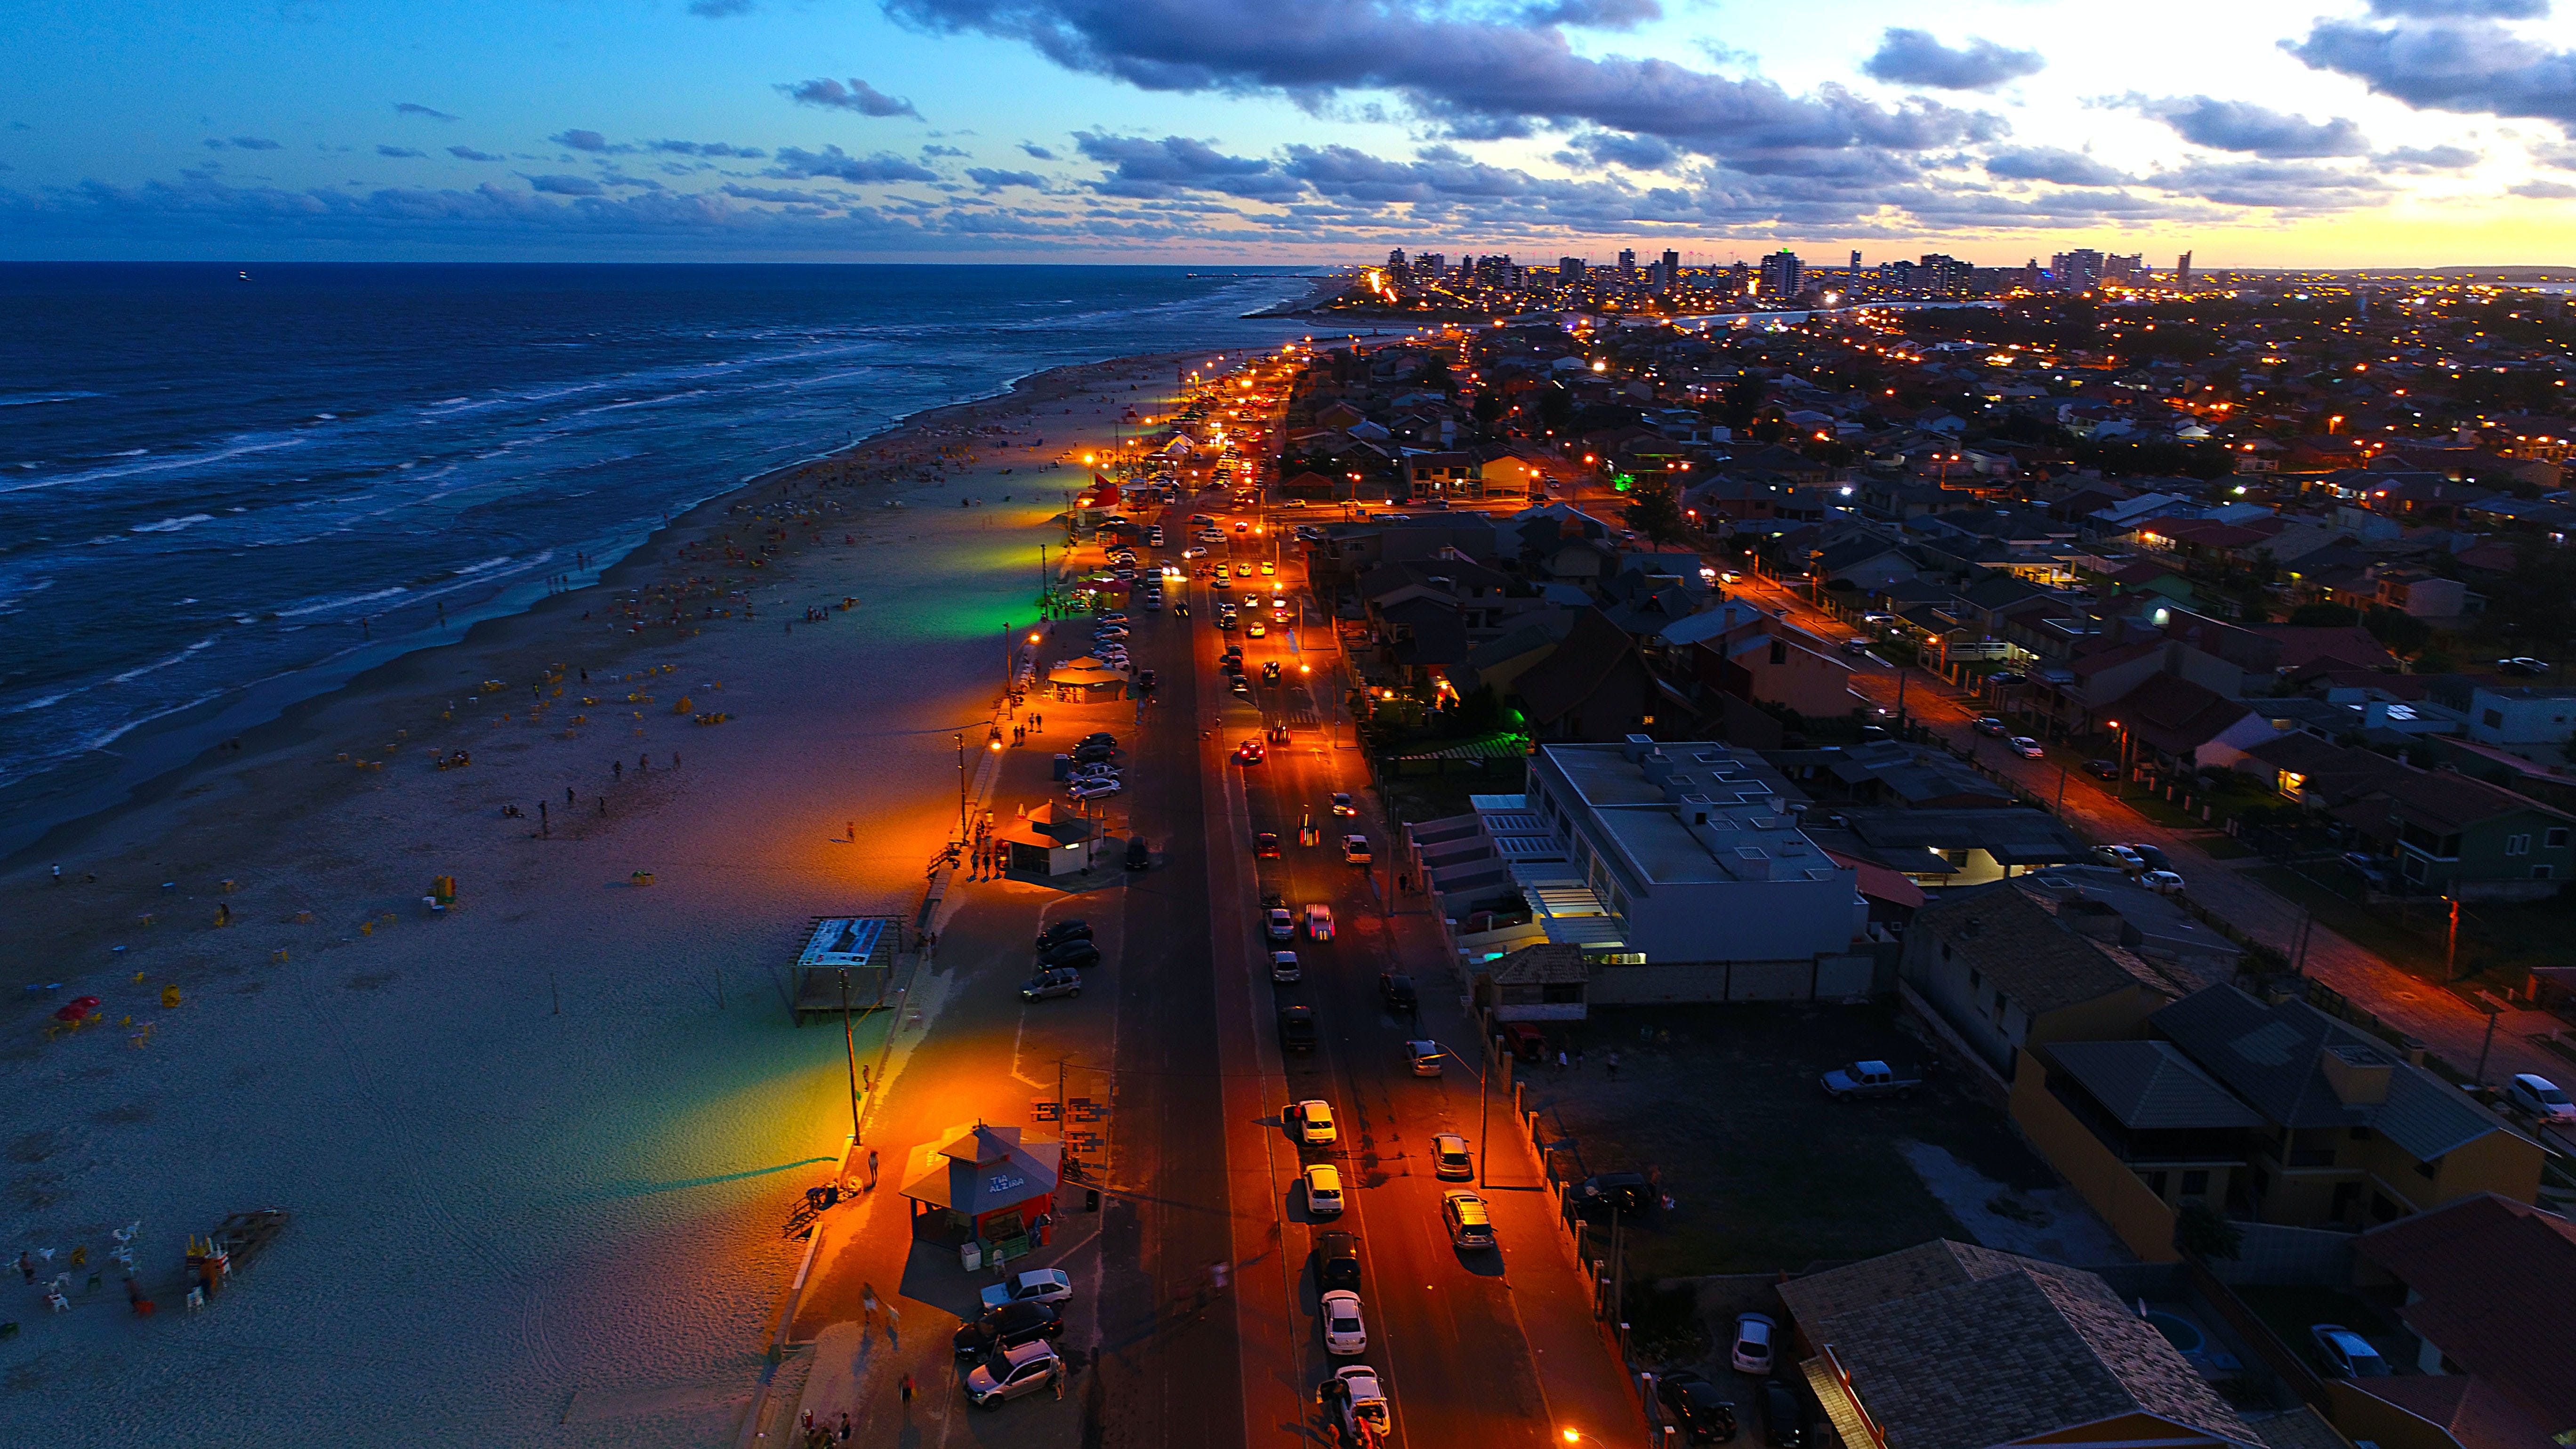 Aerial Photography of City and Seashore